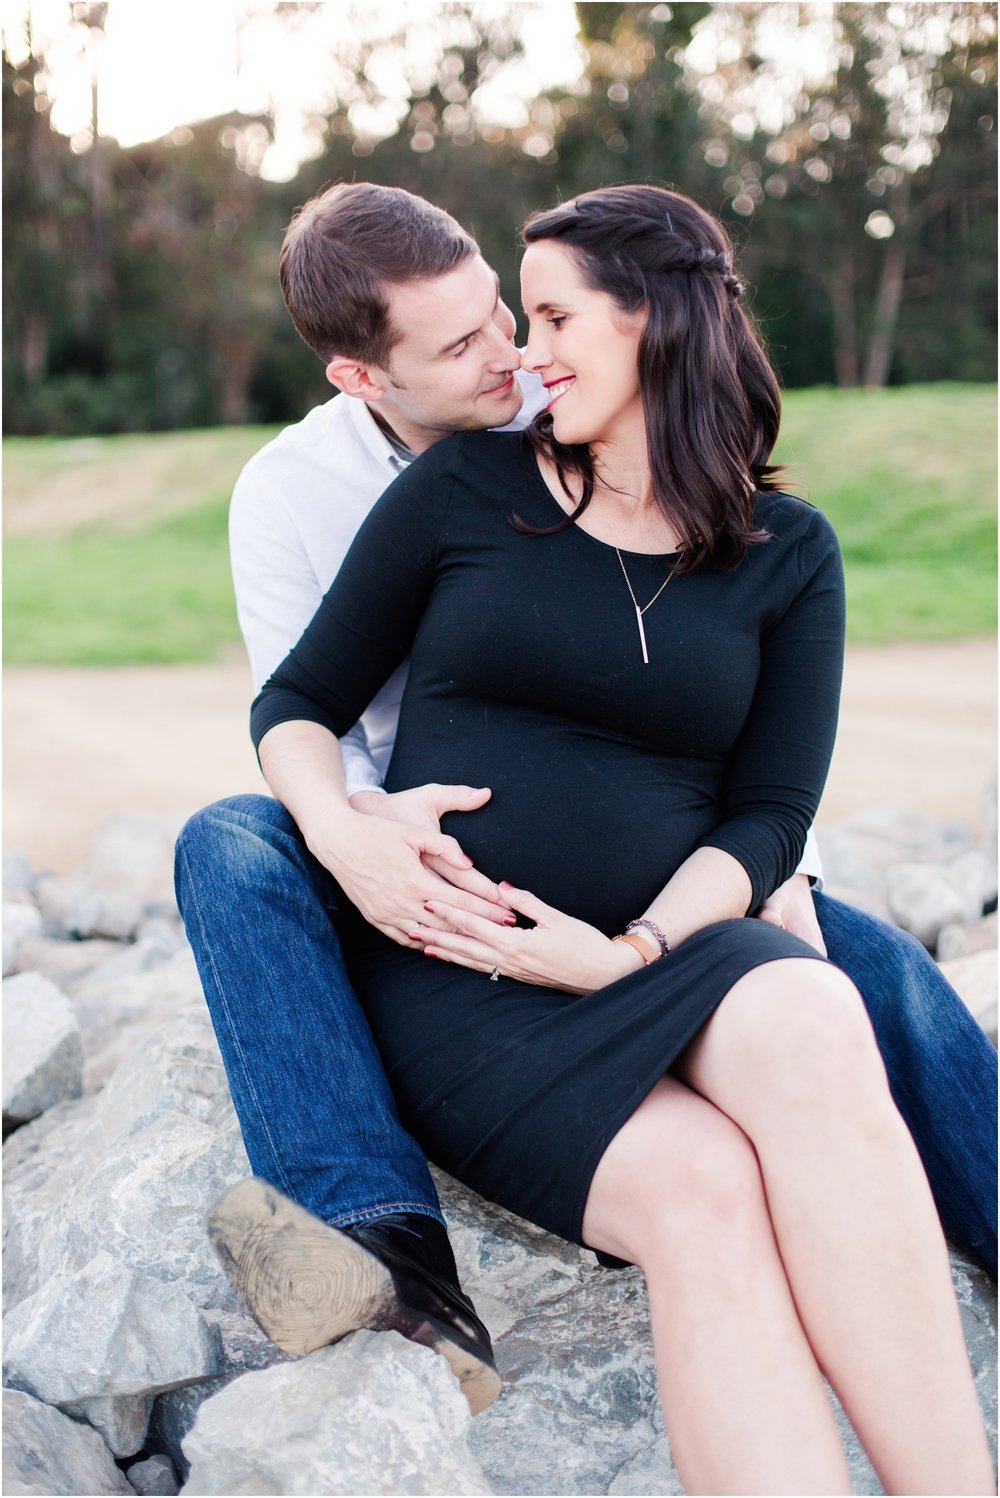 Crissy Field San Francisco maternity pictures by Briana Calderon Photography_0283.jpg